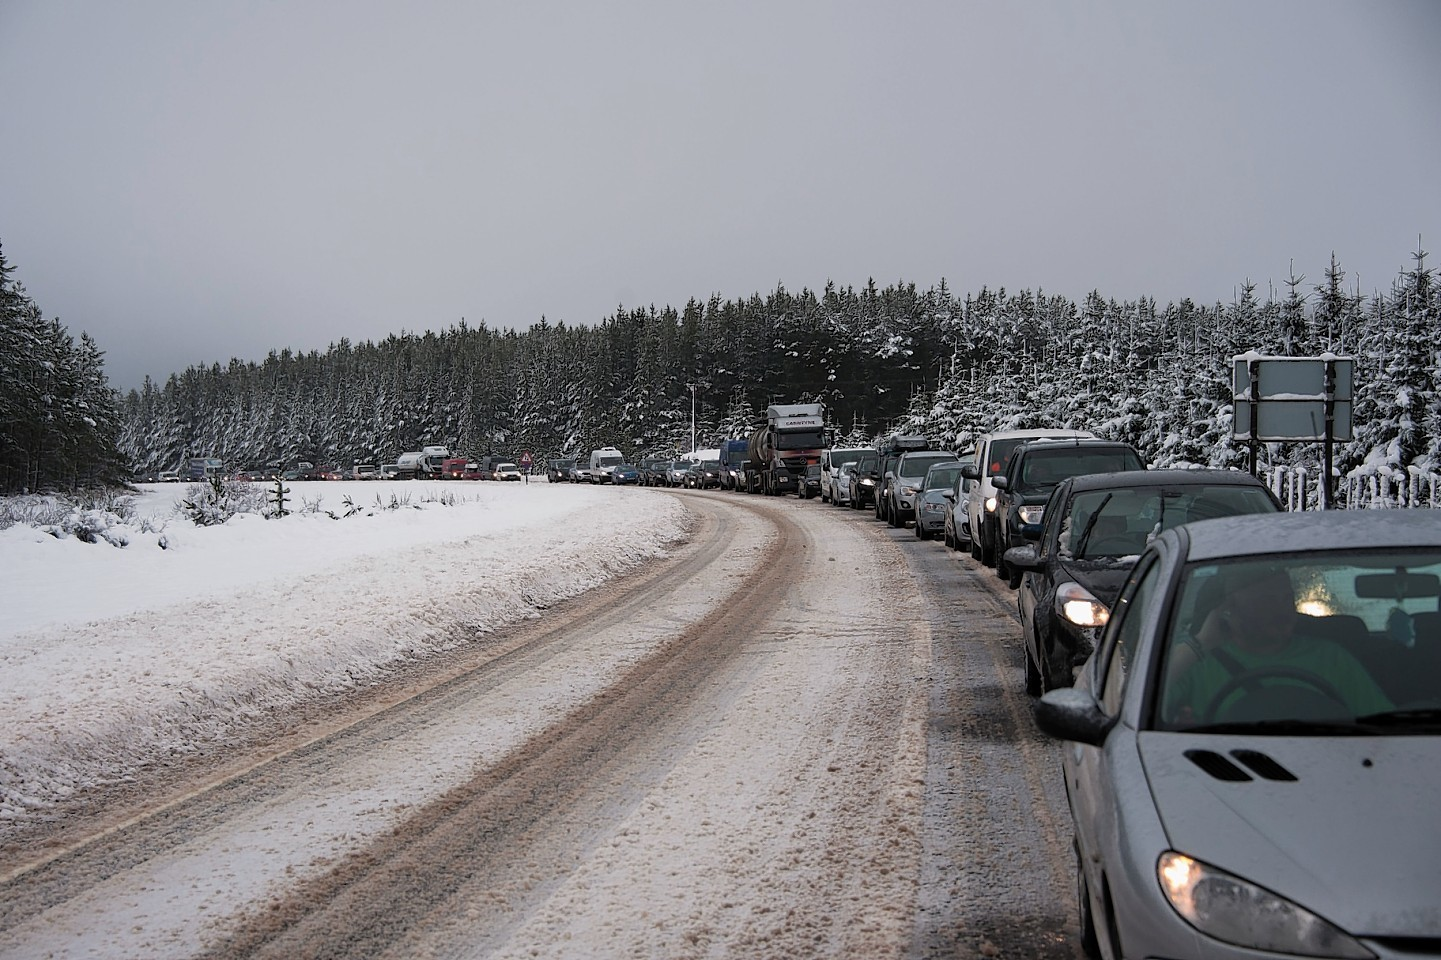 Yesterday the A9 was hit with ice and snow